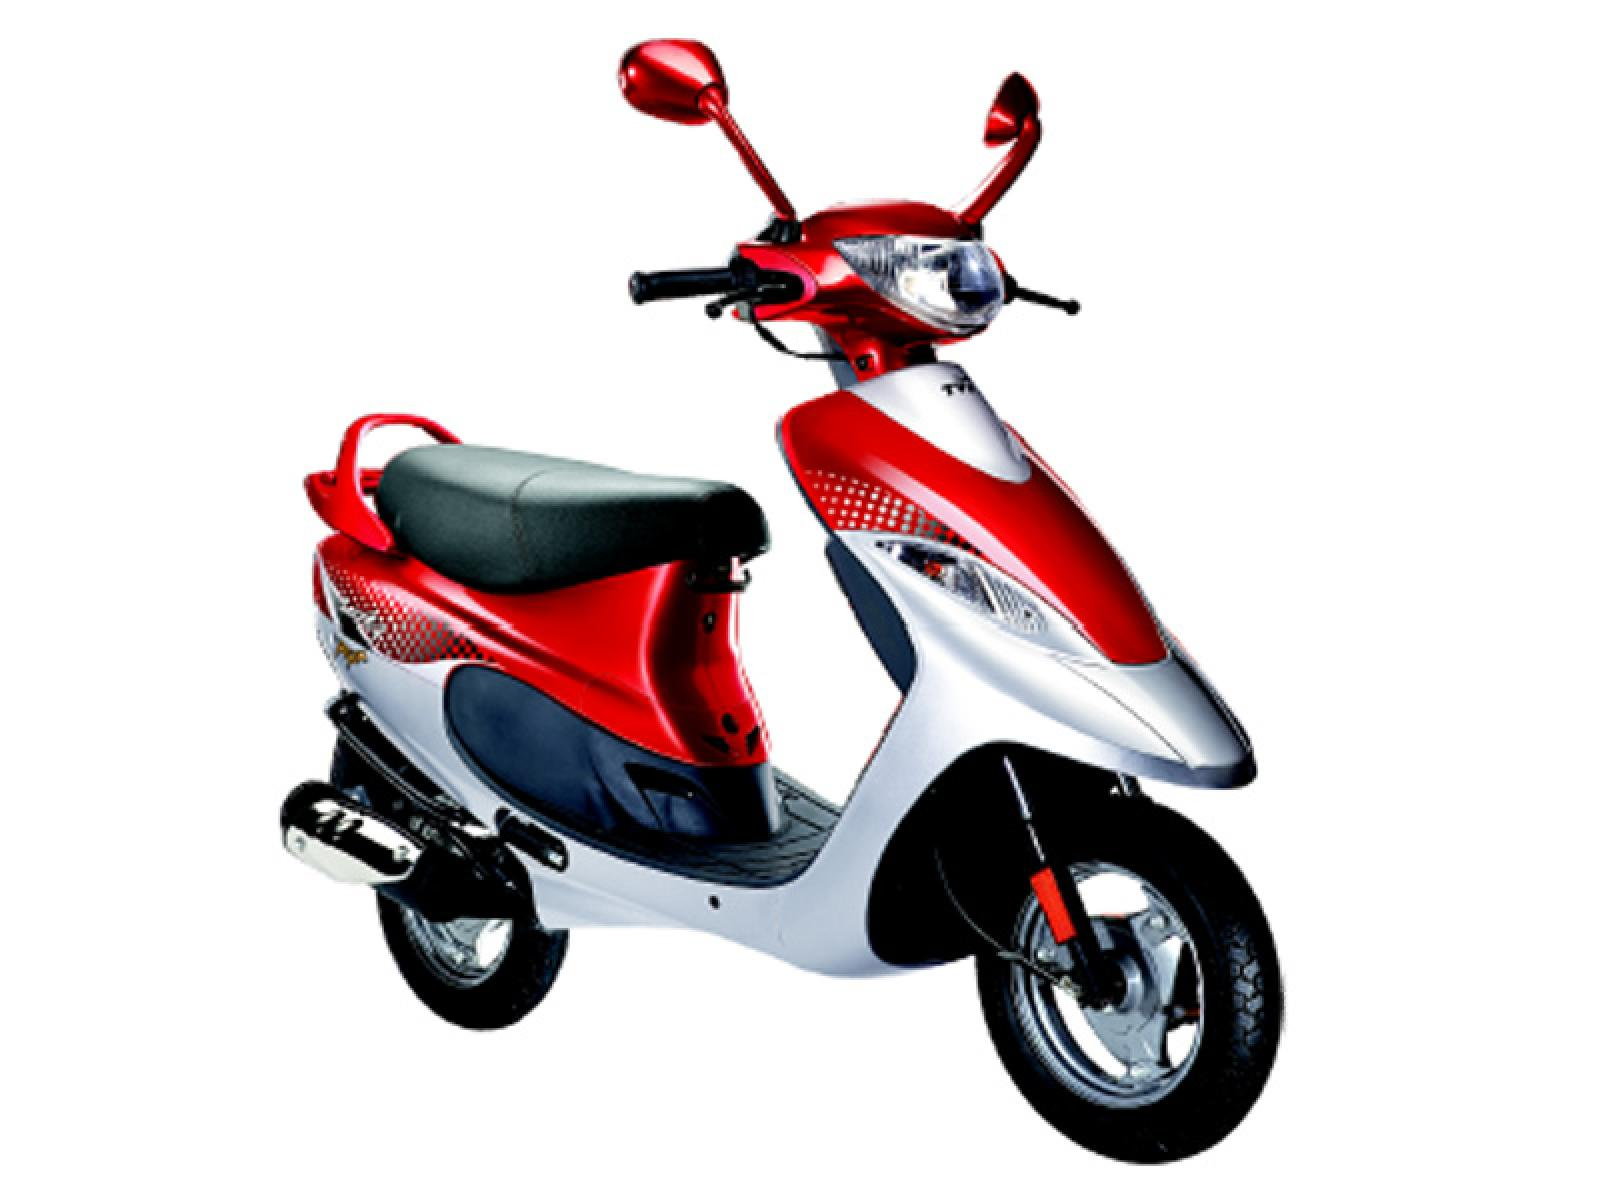 Tvs excel heavy duty price in bangalore dating 5